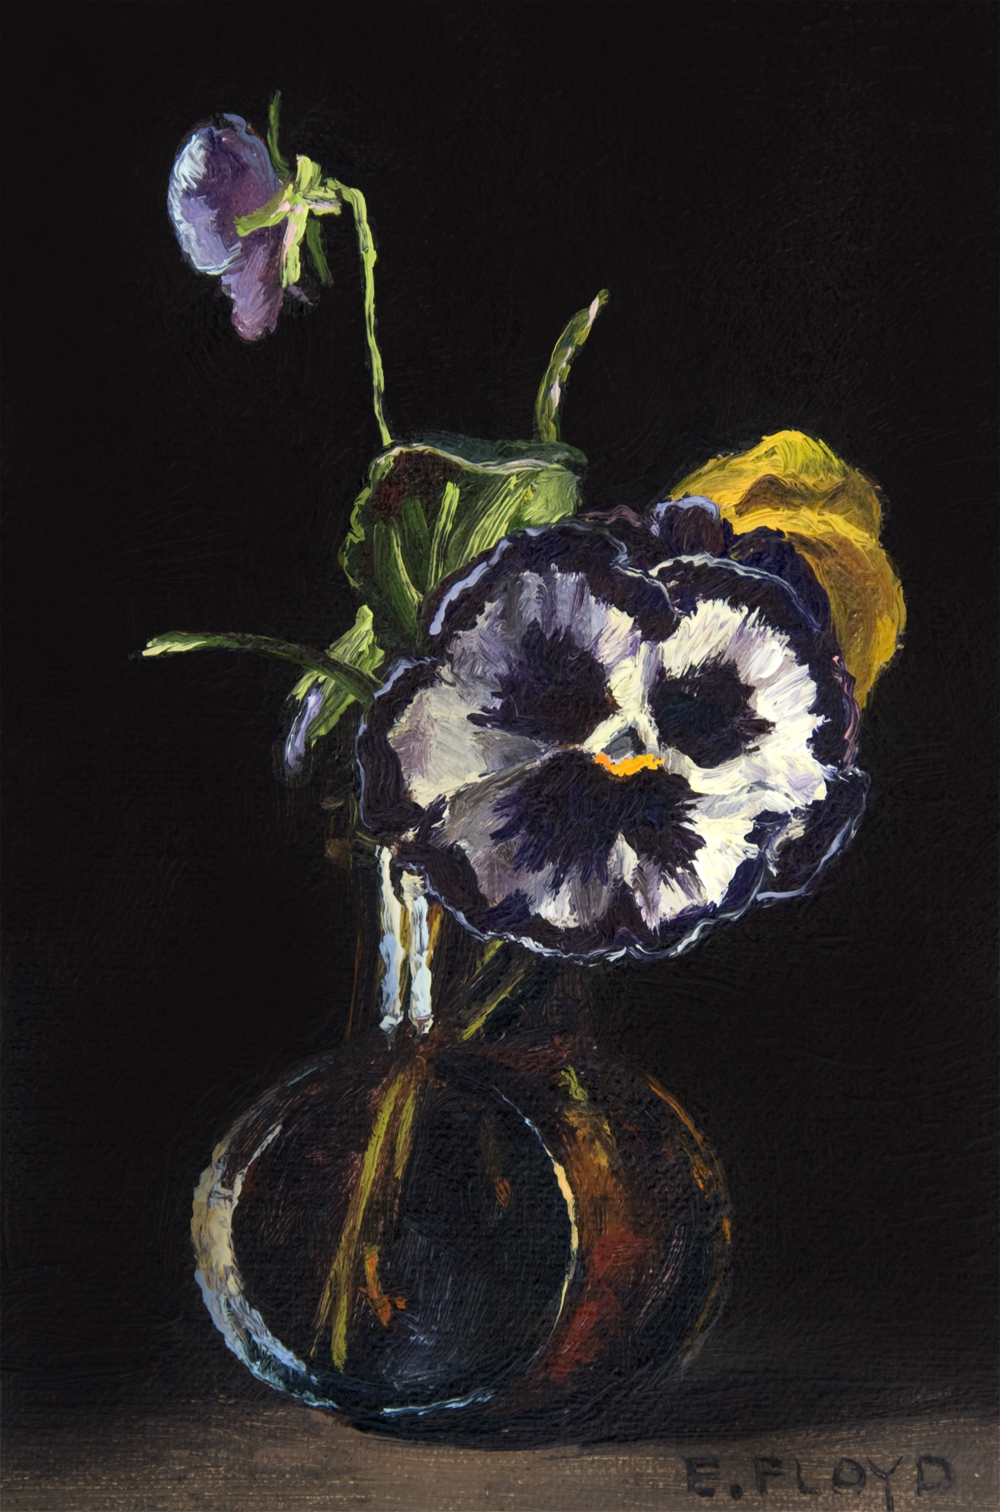 20141018-056-Pansies-in-Amber-Bottle-6x4.jpg